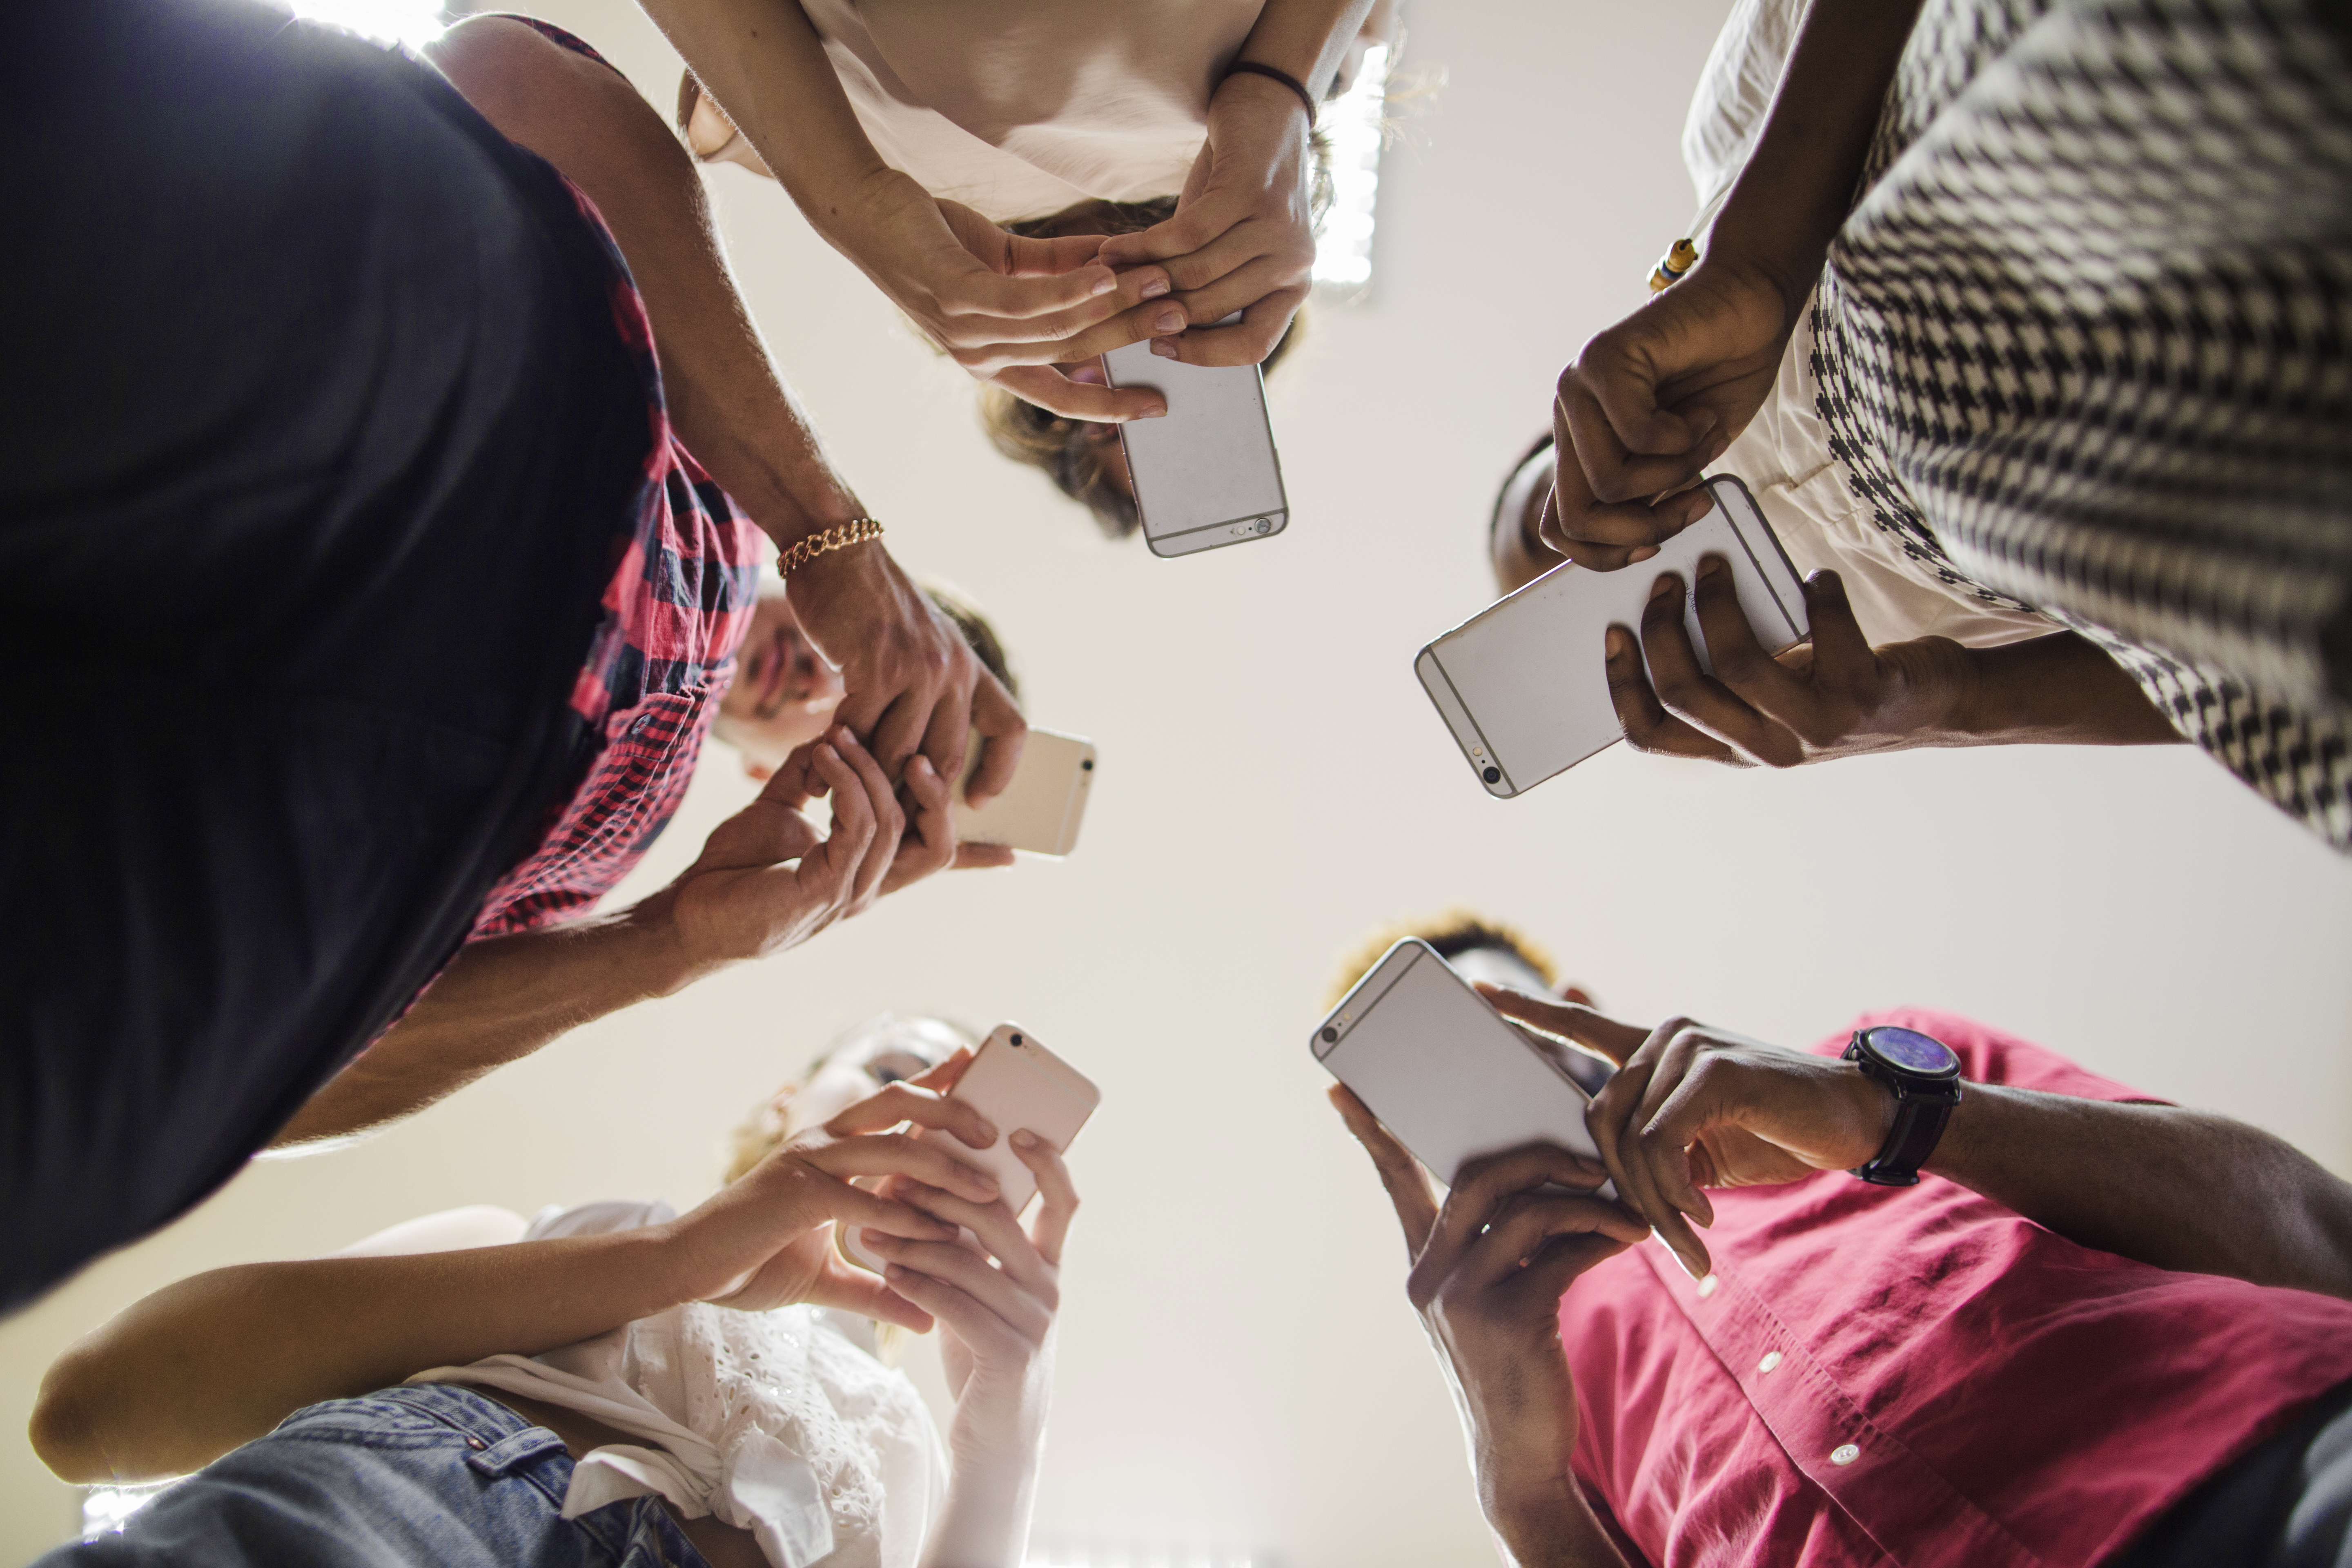 Group of hands holding phones